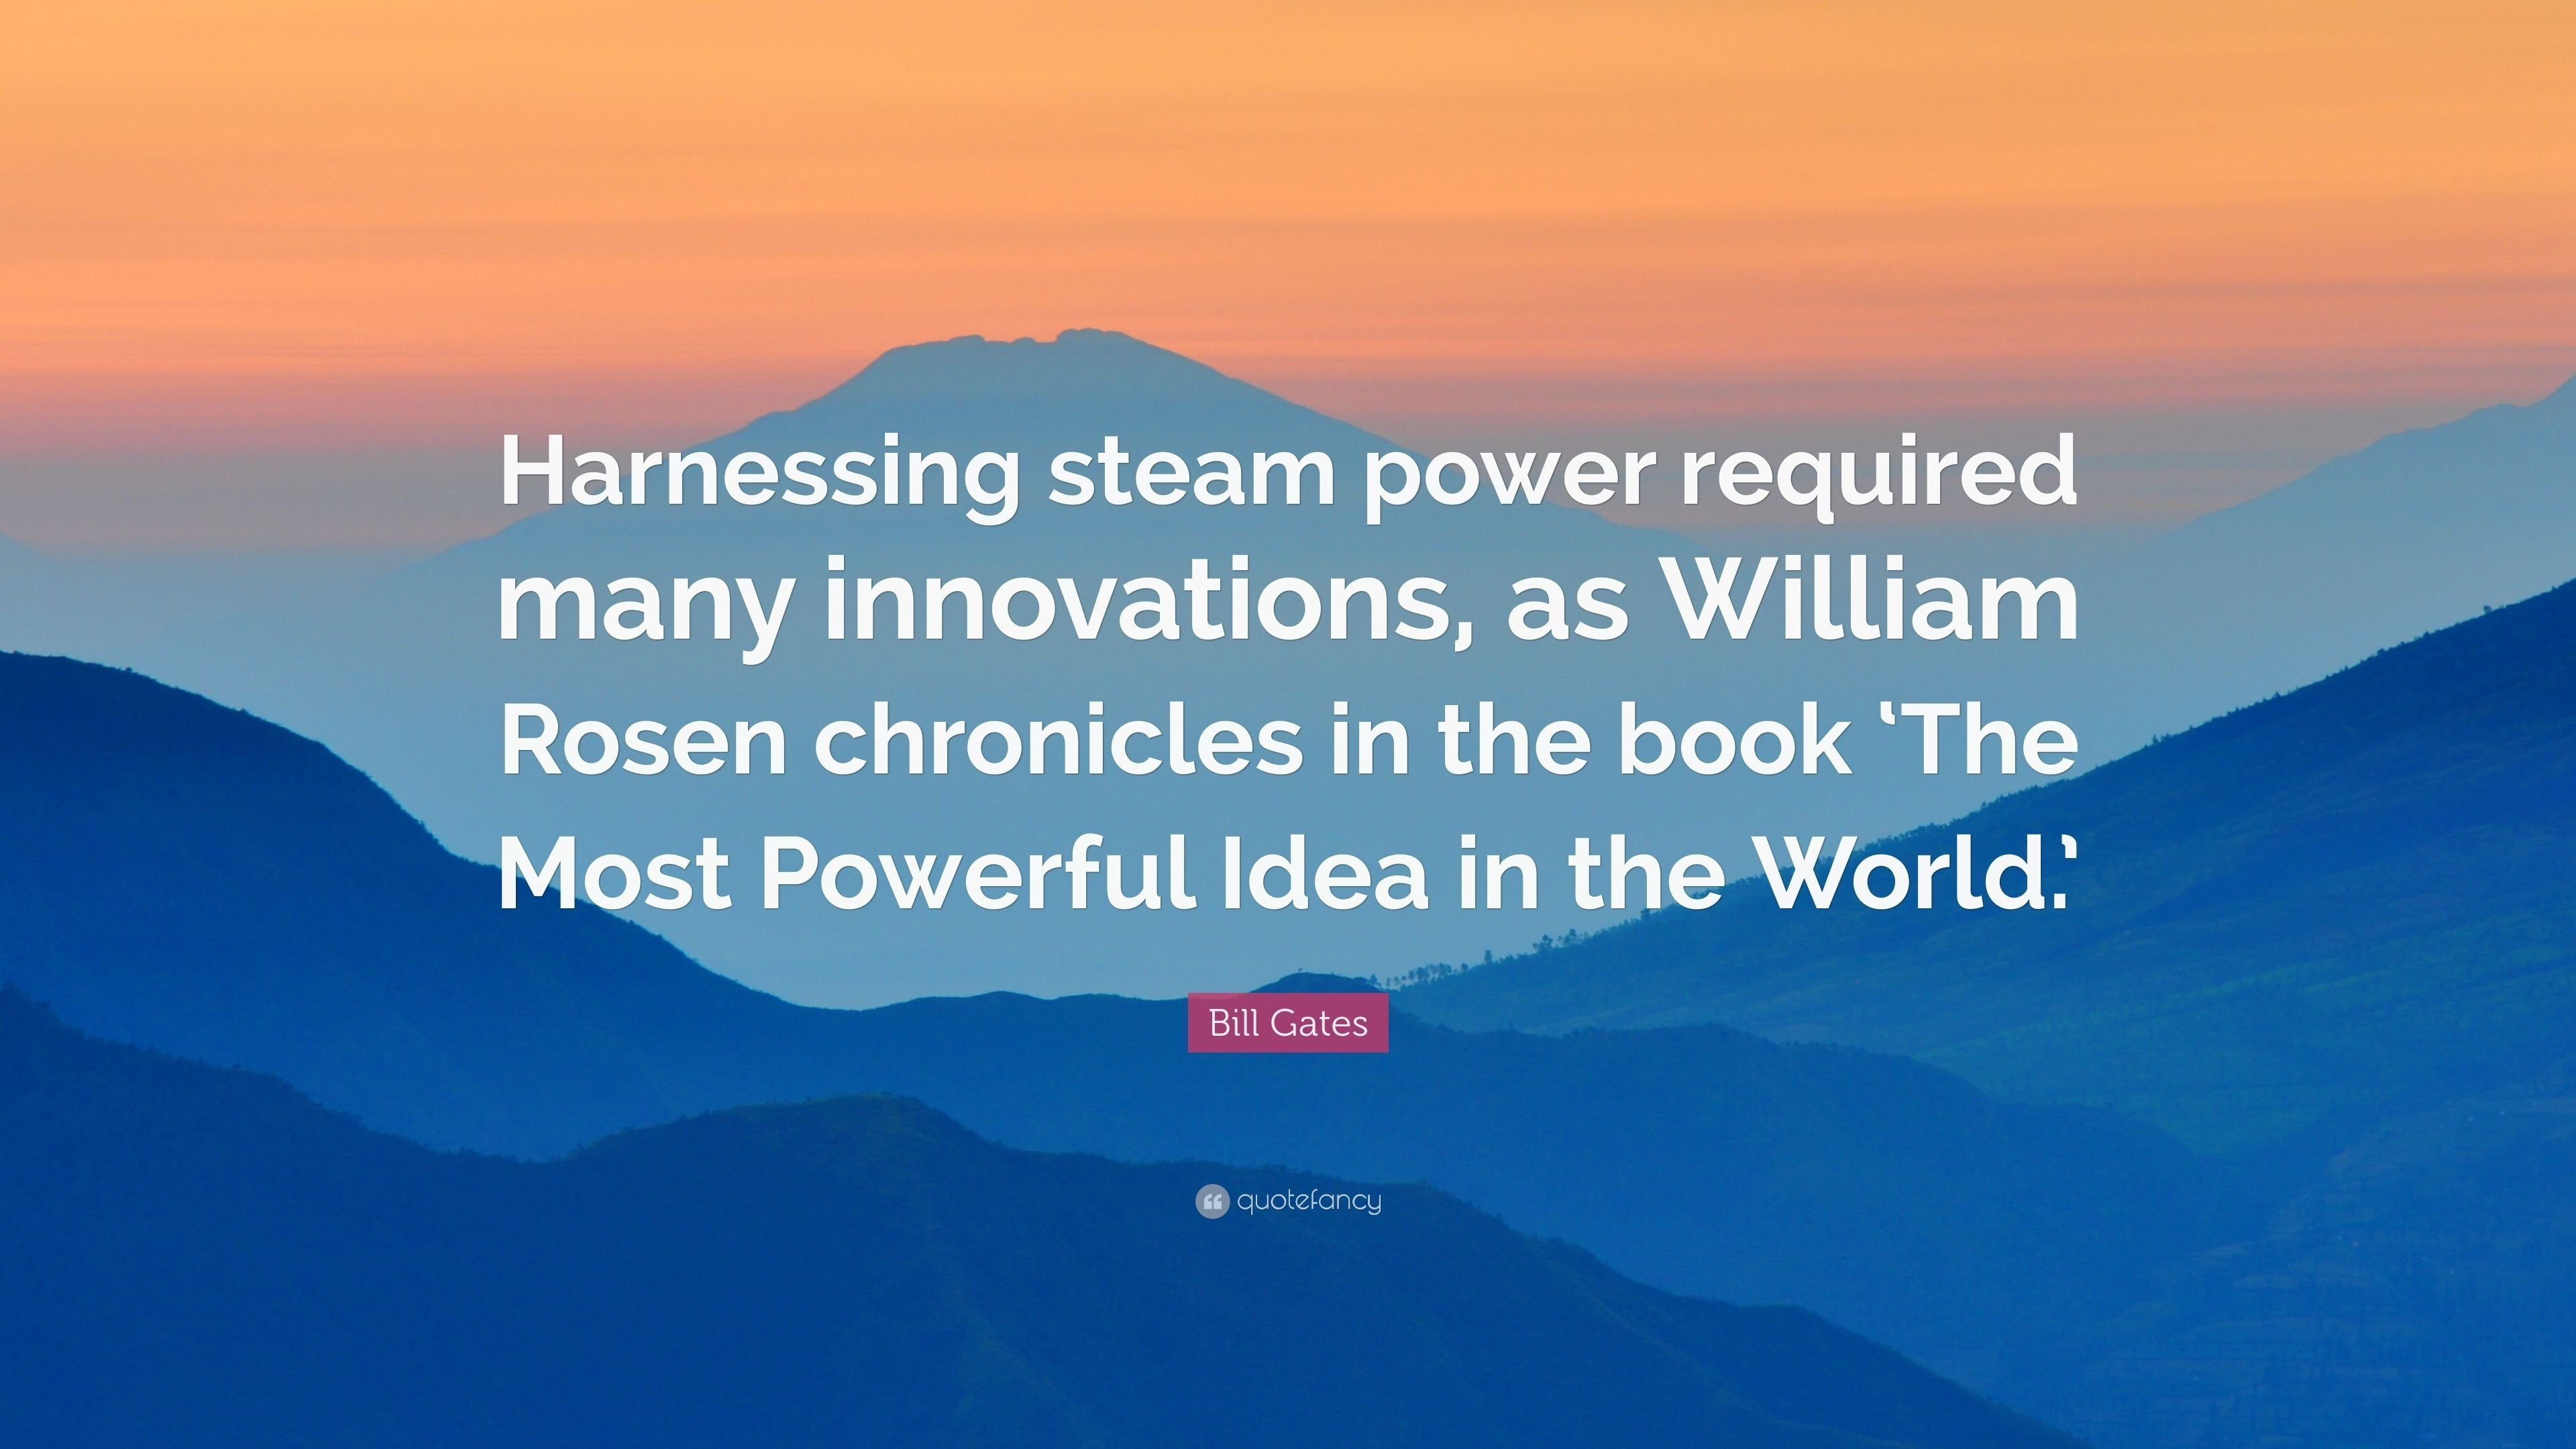 10 Amazing The Most Powerful Idea In The World bill gates quote harnessing steam power required many innovations 1 2021